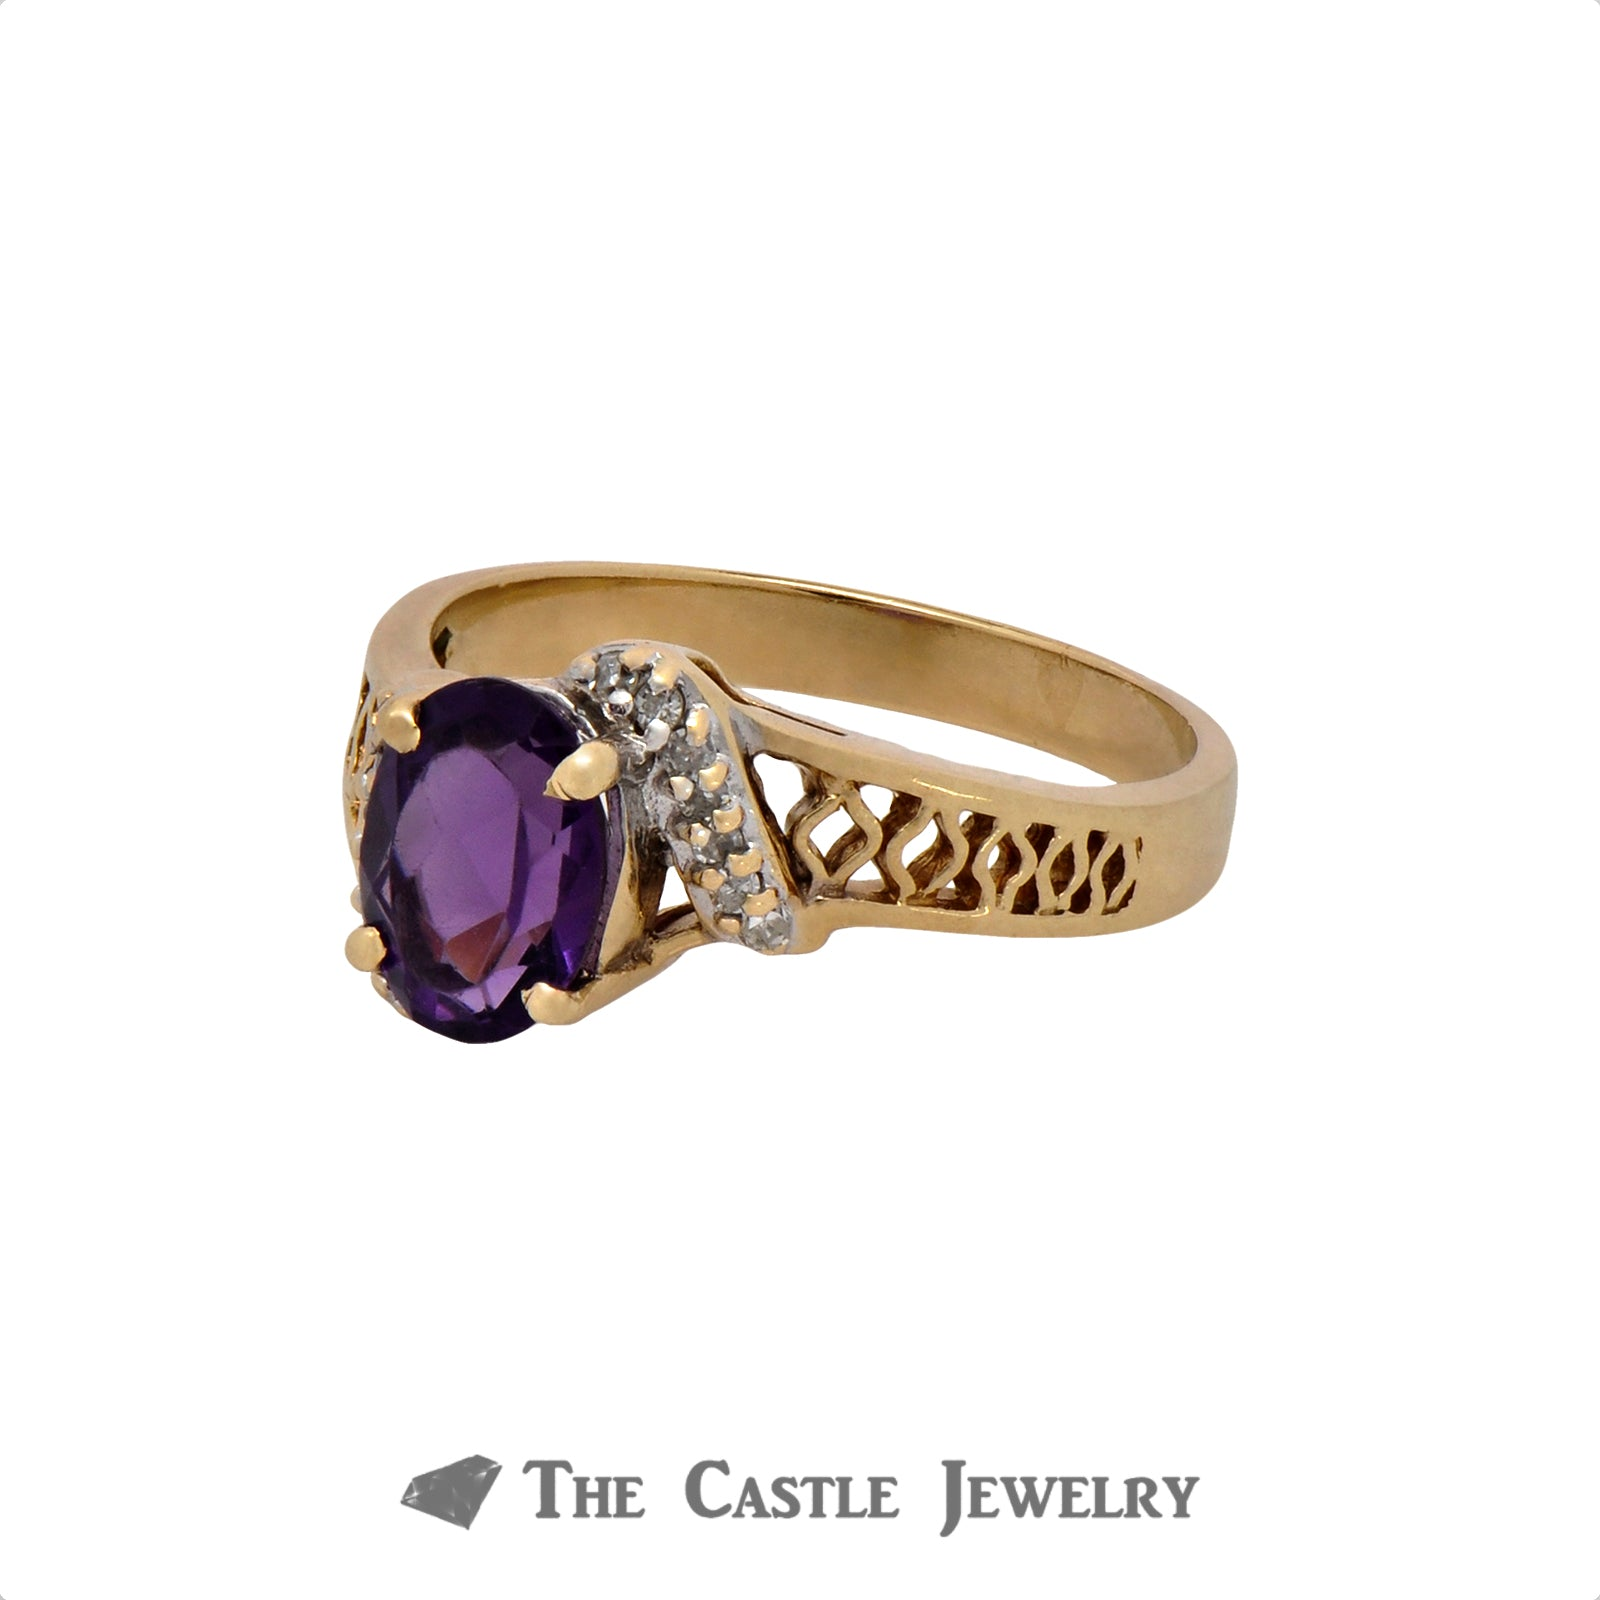 Oval Cut Amethyst Ring with .07cttw Diamond Accents in 10k Yellow Gold Open Filigree Setting-2